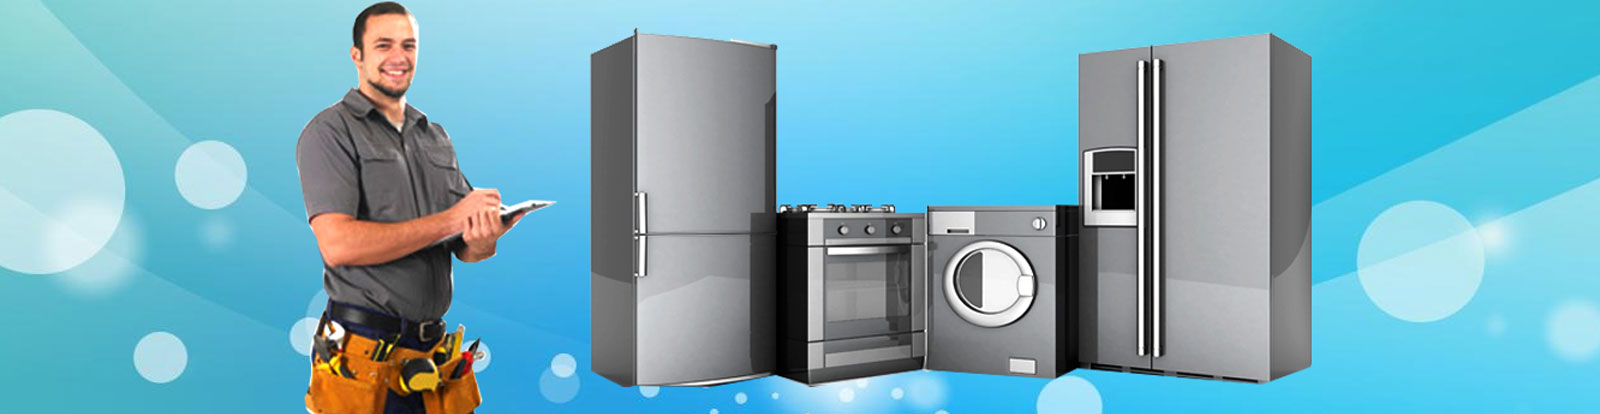 washing-machine-repair-banner